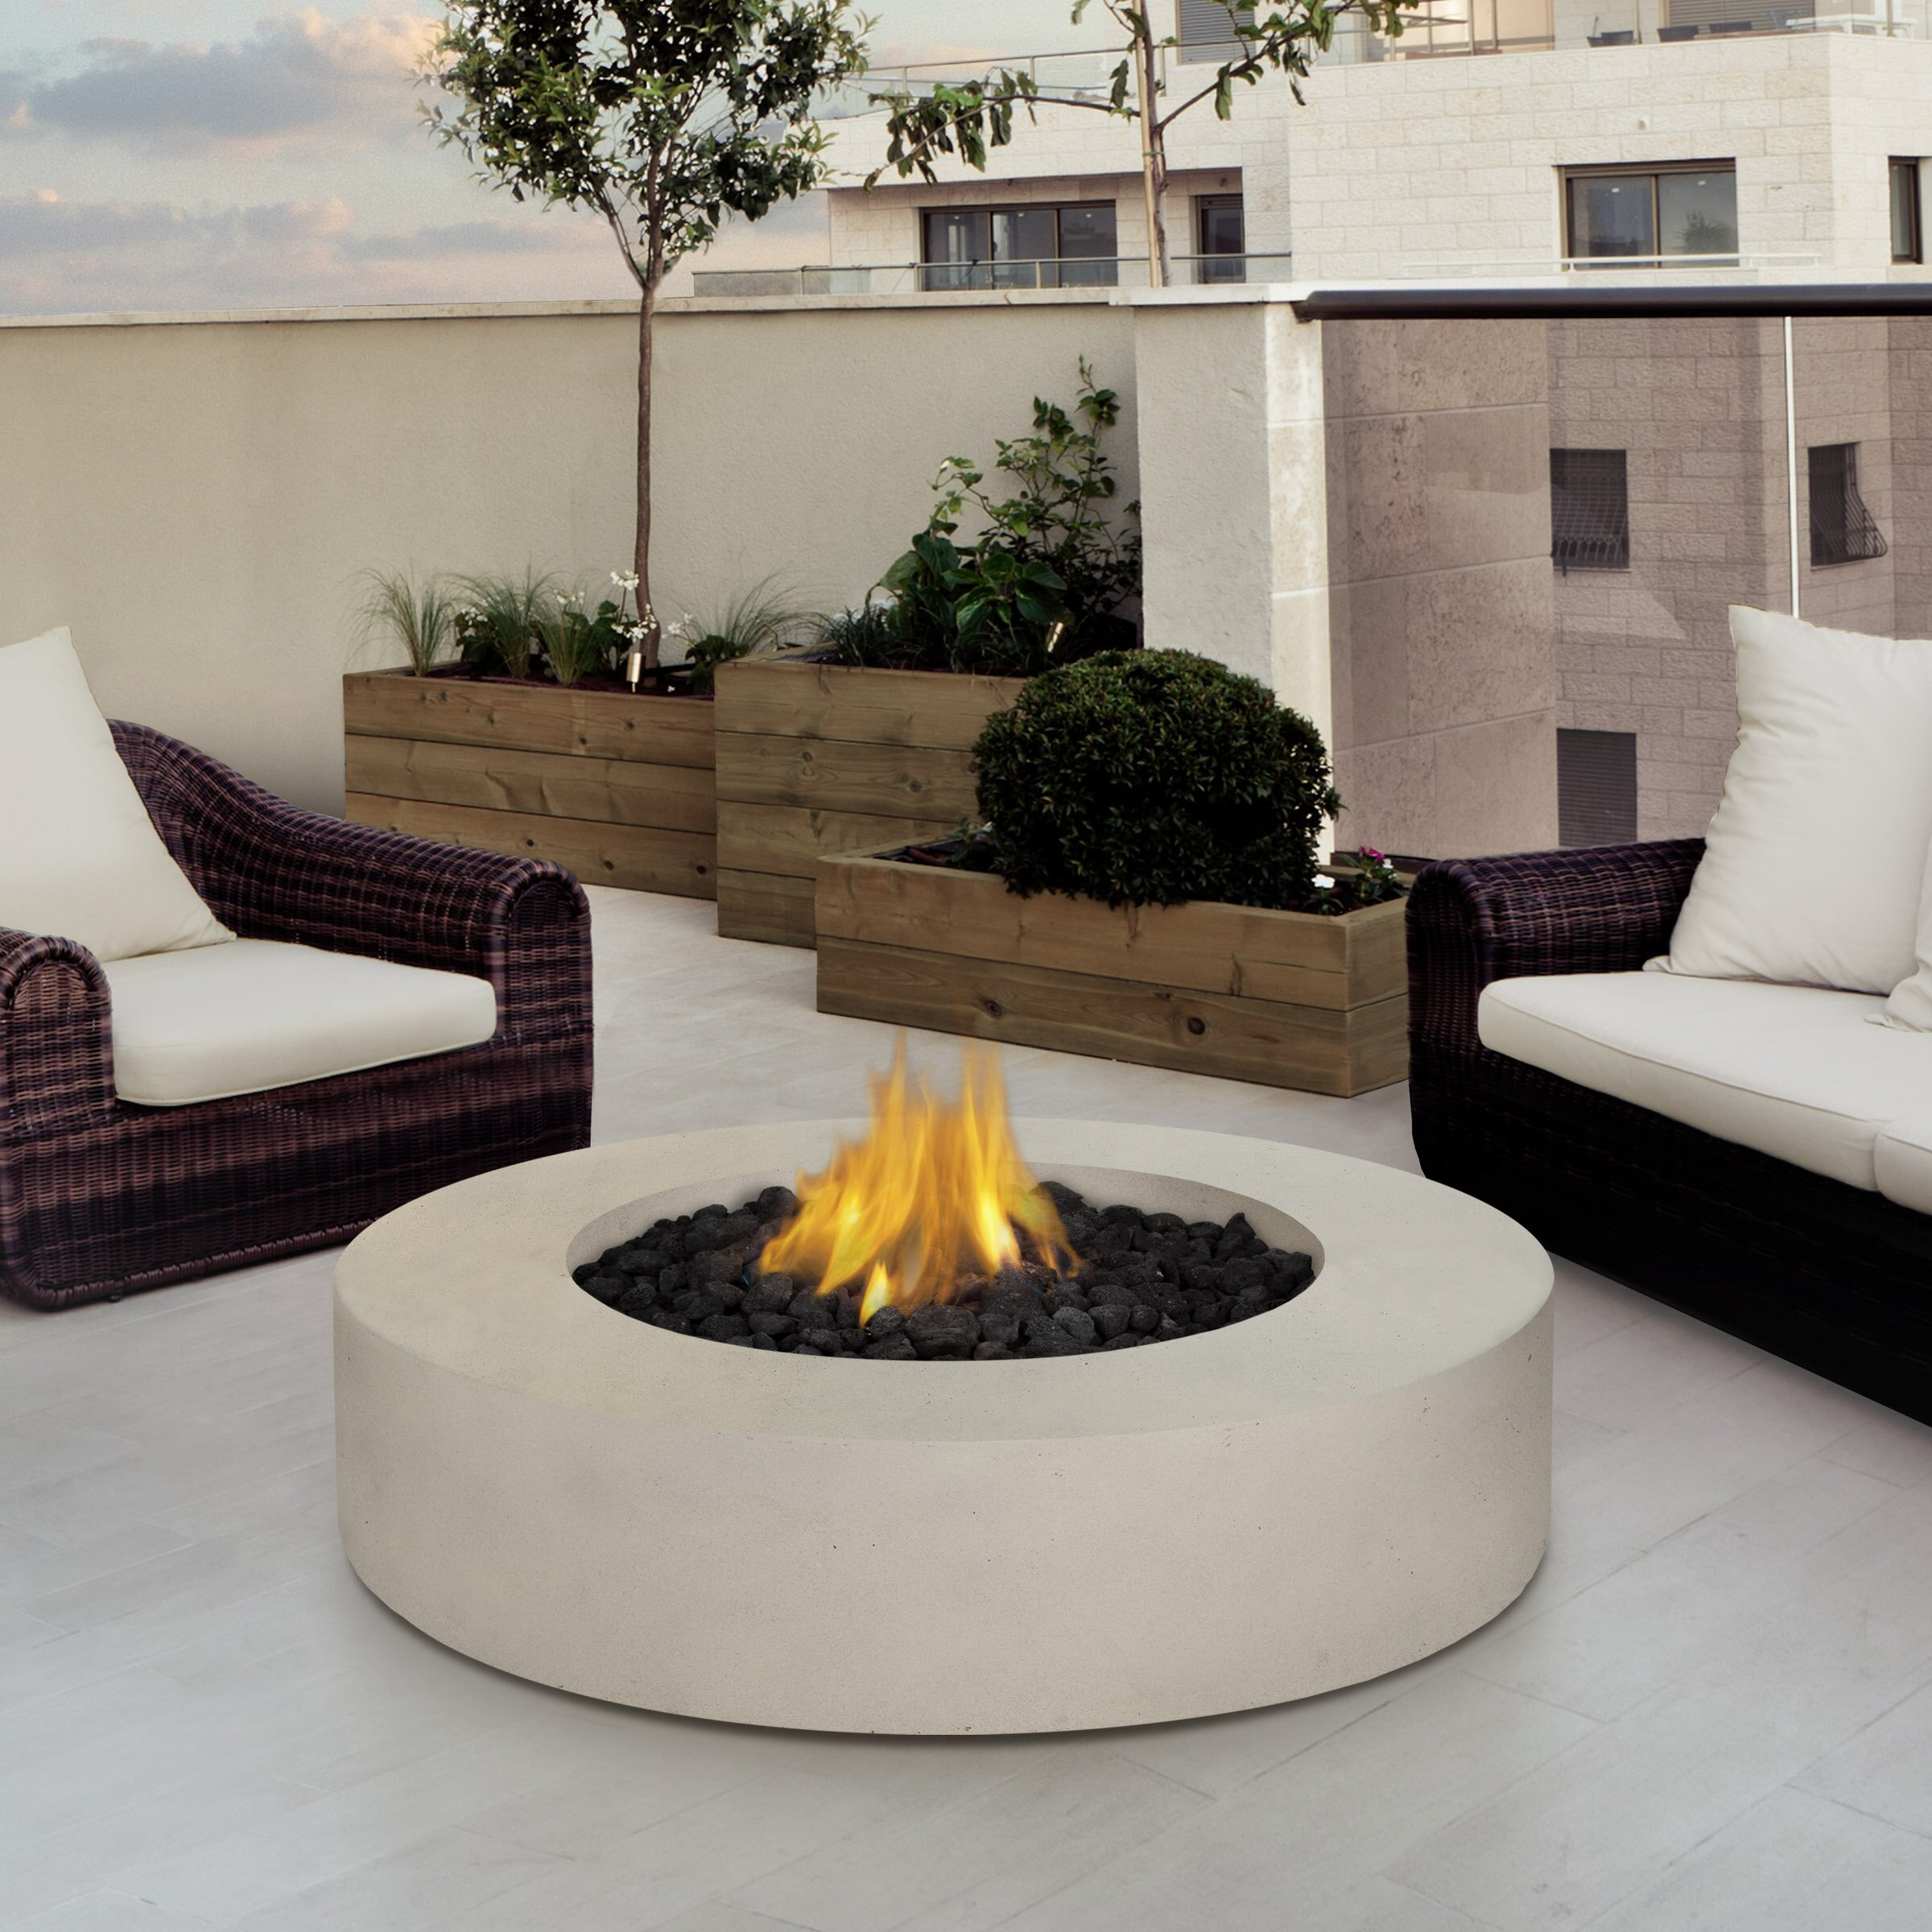 Indoor fire pit coffee table - Real Flame Mezzo Propane Fire Pit Table